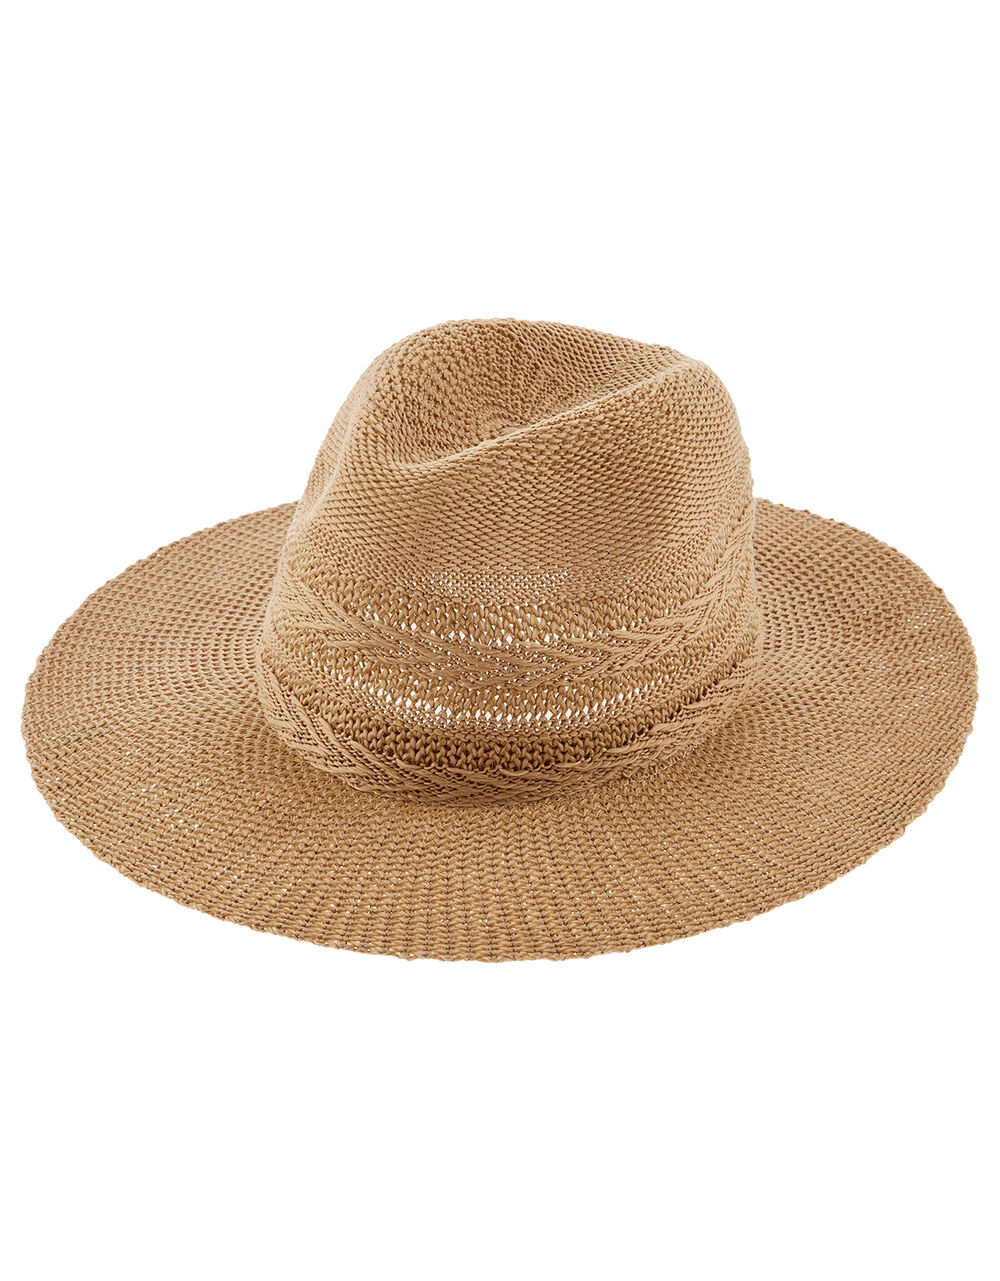 Chevron Packable Fedora Hat, Tan (TAN), large